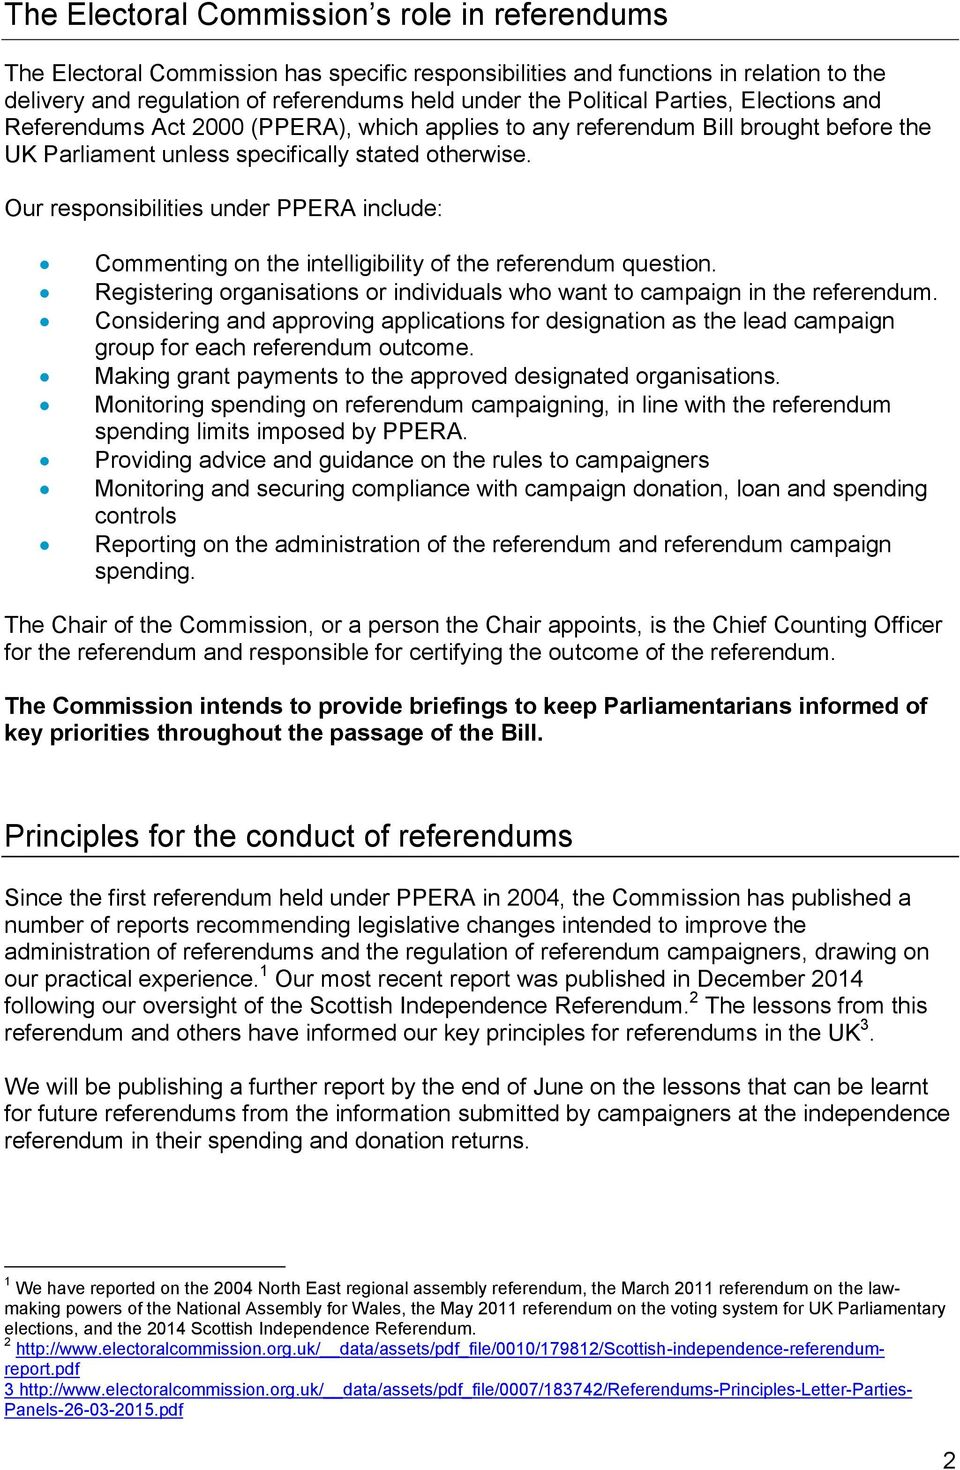 Our responsibilities under PPERA include: Commenting on the intelligibility of the referendum question. Registering organisations or individuals who want to campaign in the referendum.